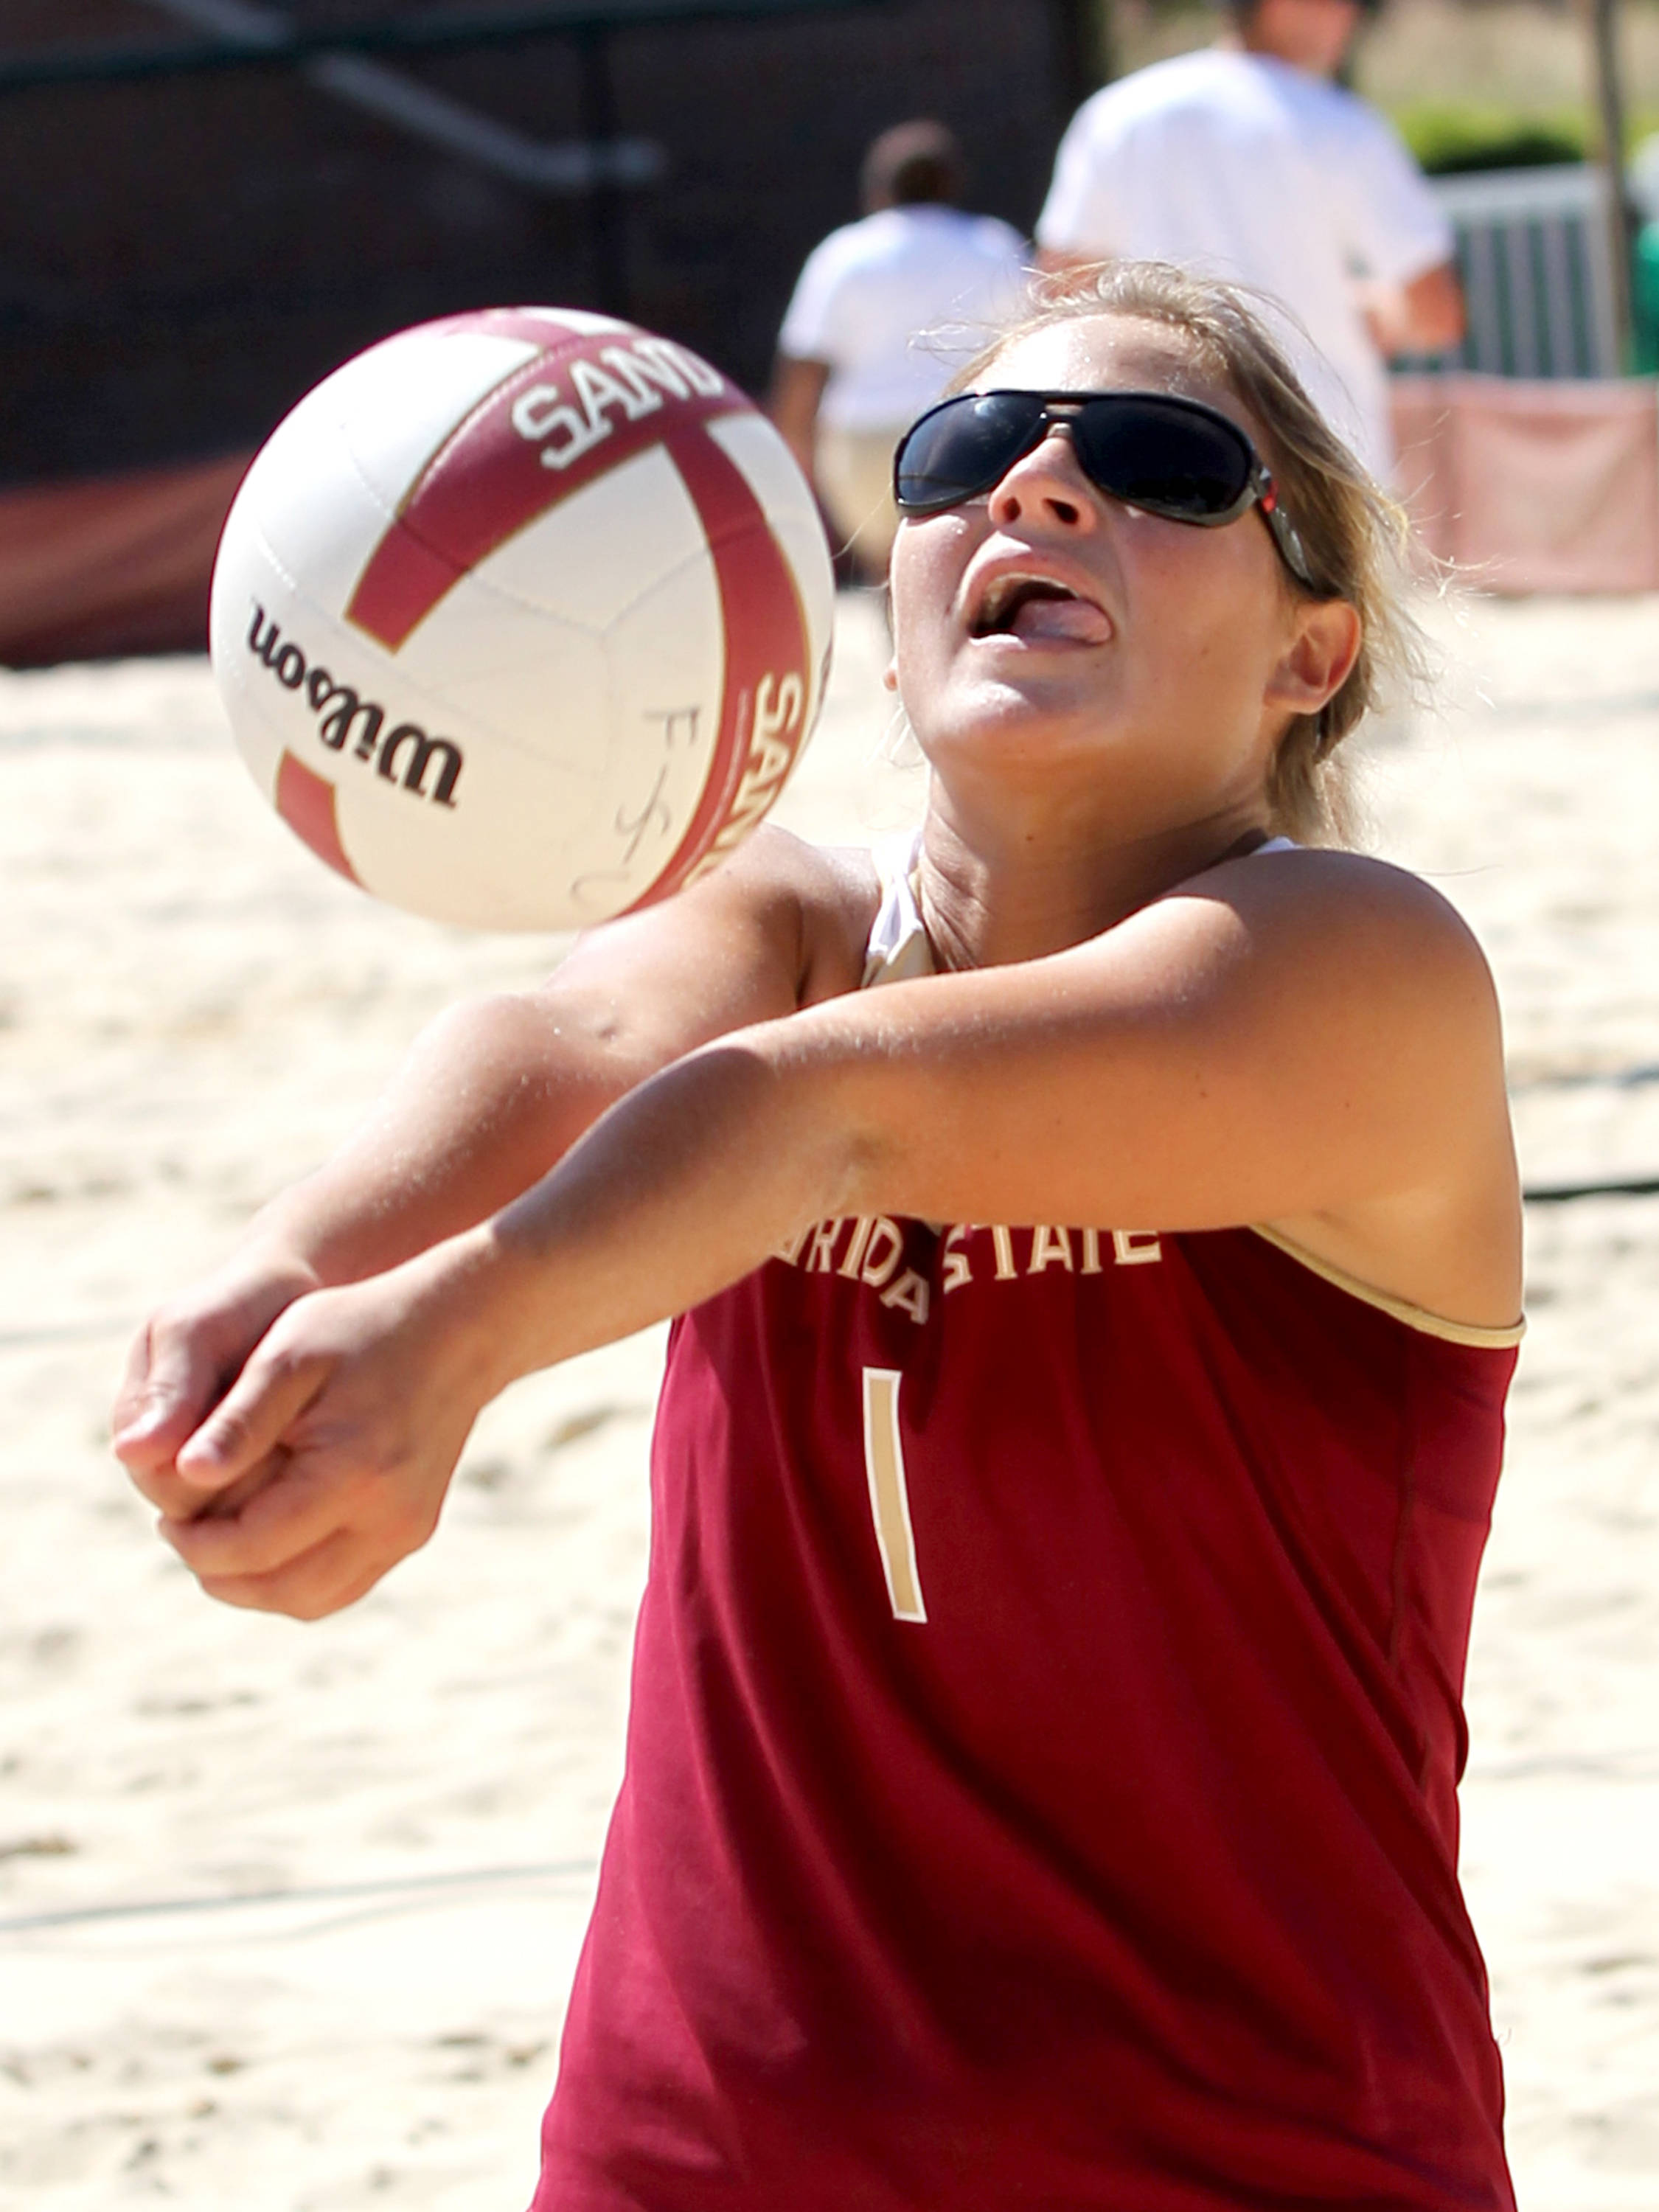 Melanie Pavels, Sand Volleyball Tournament,  04/20/13 . (Photo by Steve Musco)